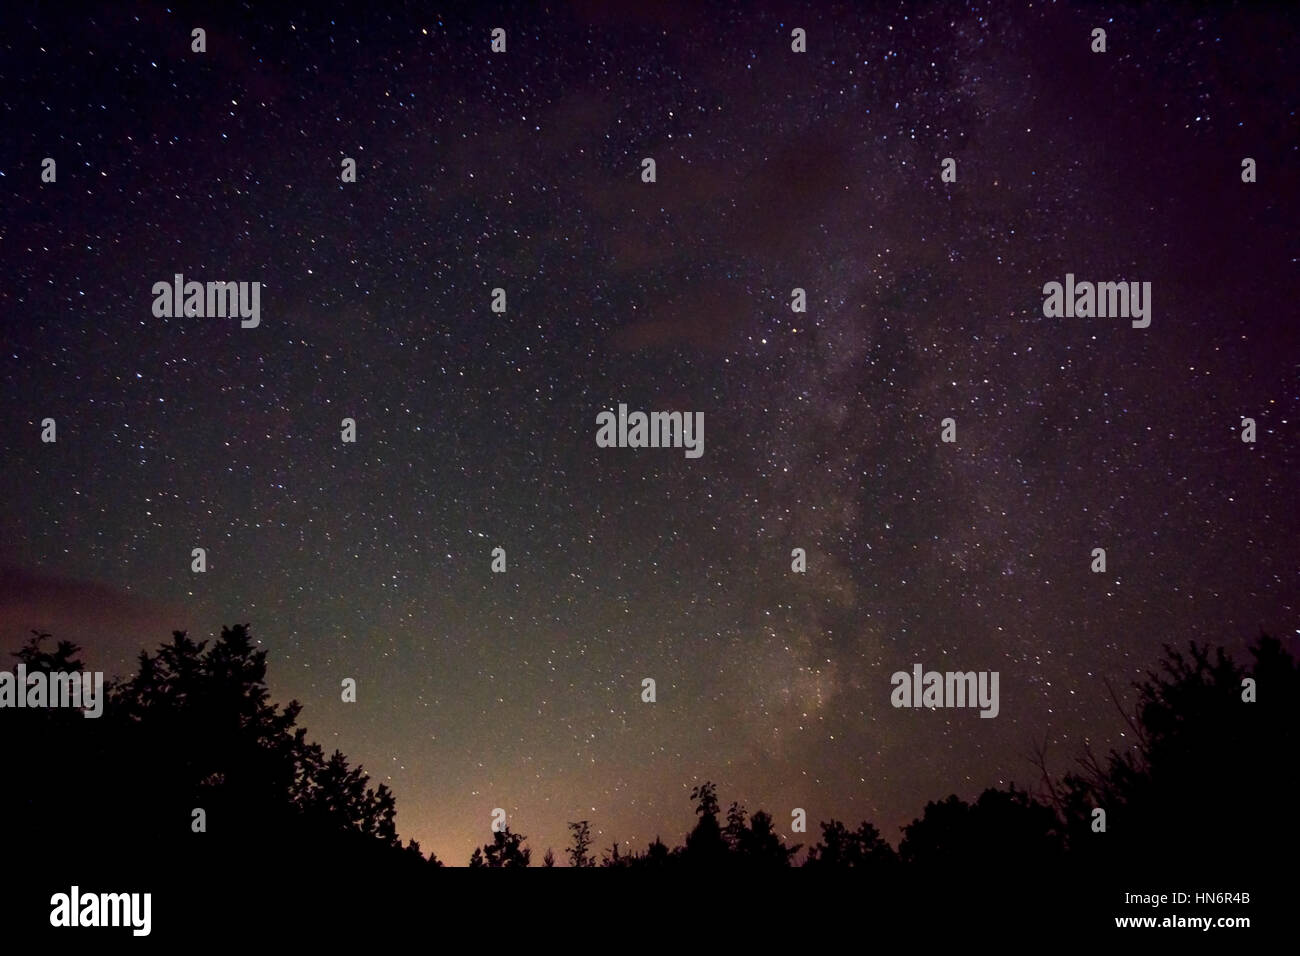 Night sky with the milky way, stars and tree silhouettes - Stock Image